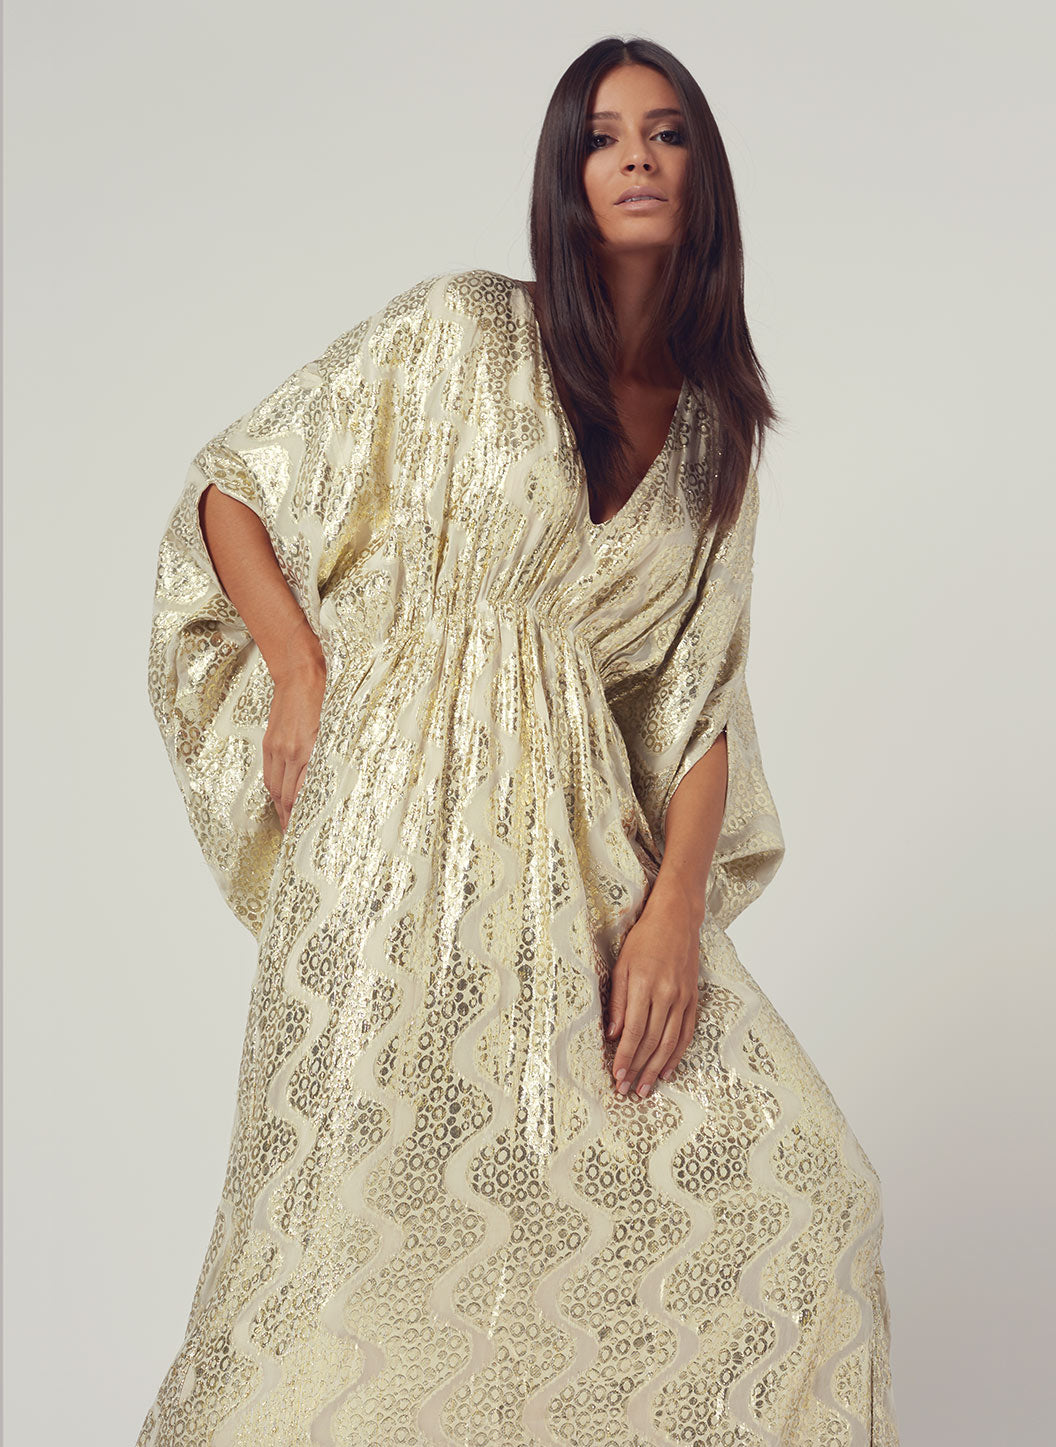 Look 5 Empire Line Maxi Dress Gold Shimmer  - Melissa Odabash Anniversary Collection